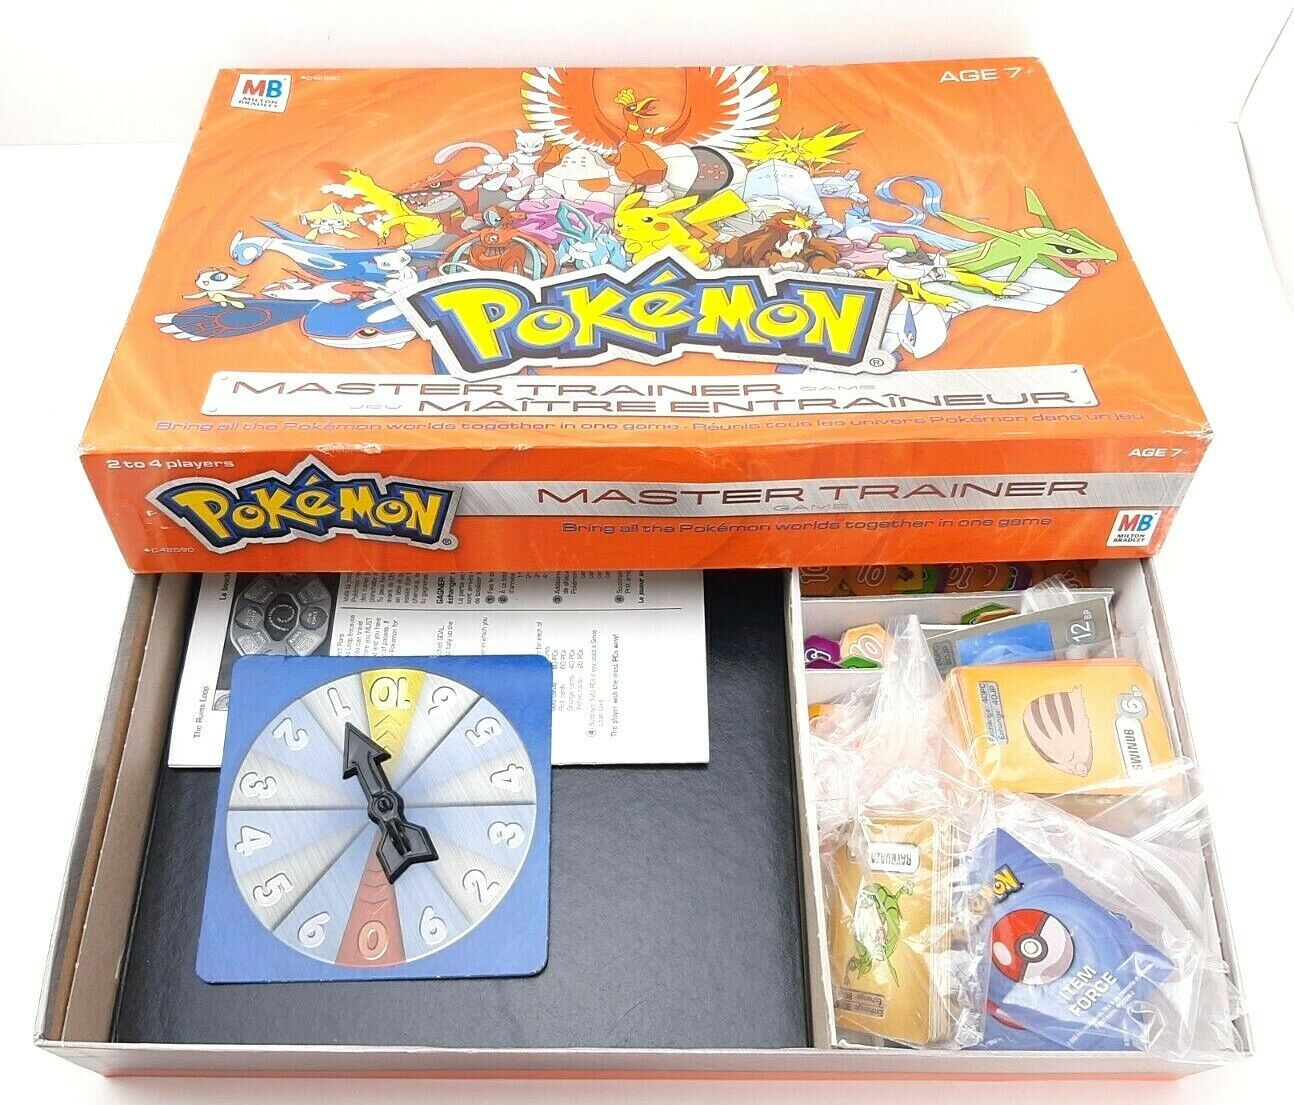 INCOMPLETE 2005 Milton Bradley Pokemon Master Trainer Board Game - $25.28